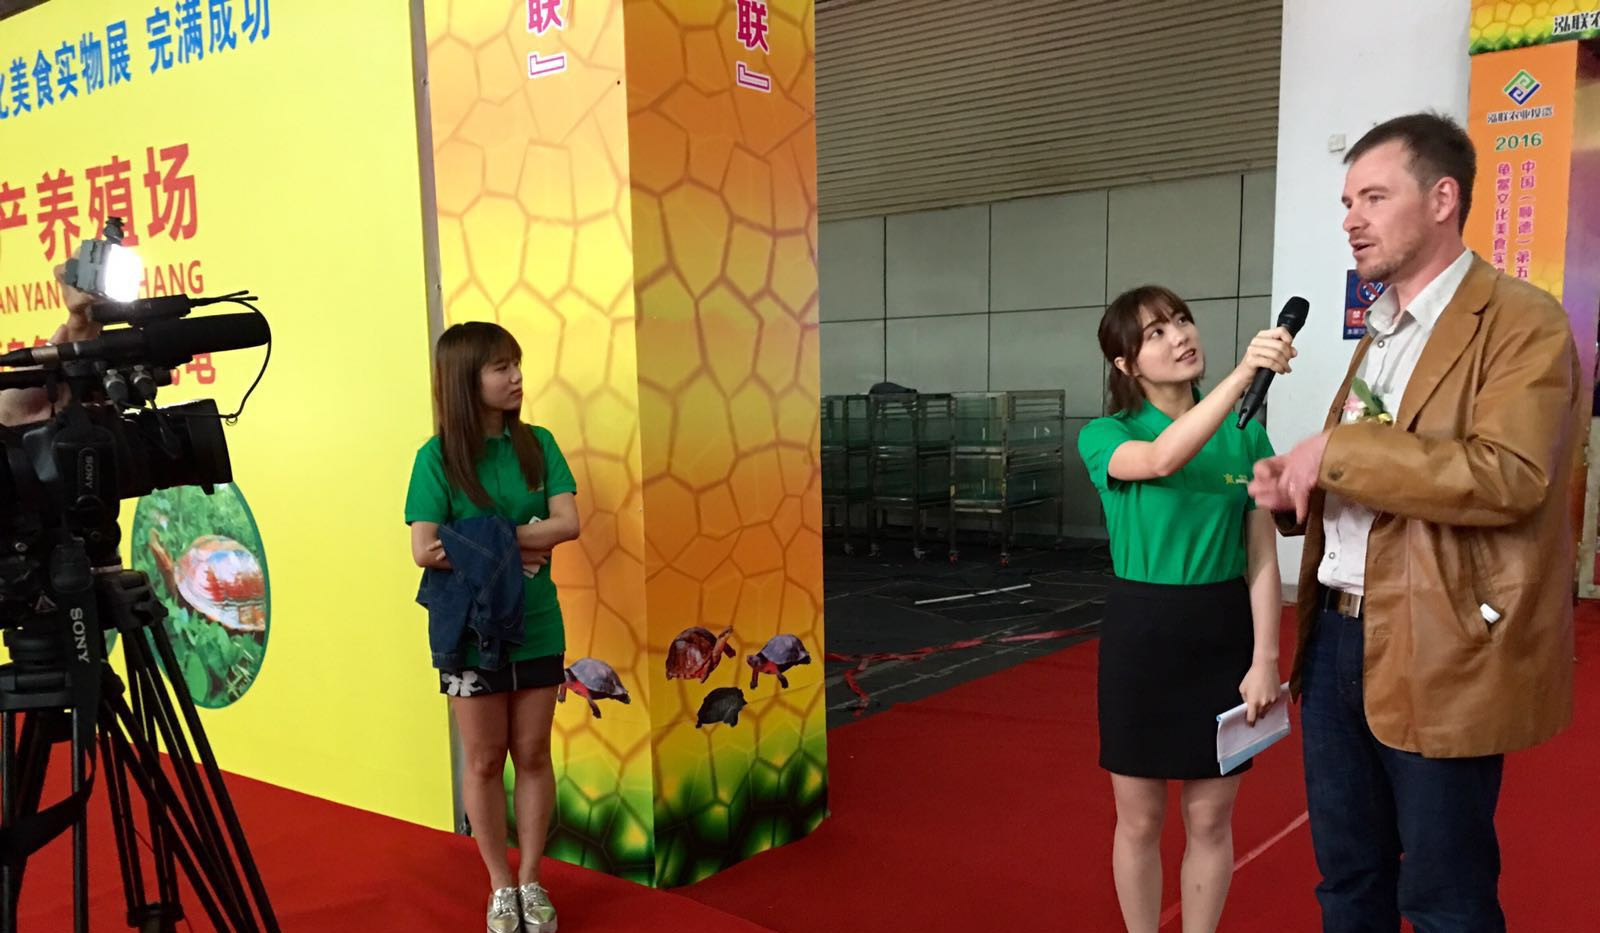 Turtle Expo Shunde2016 TV interview.jpg